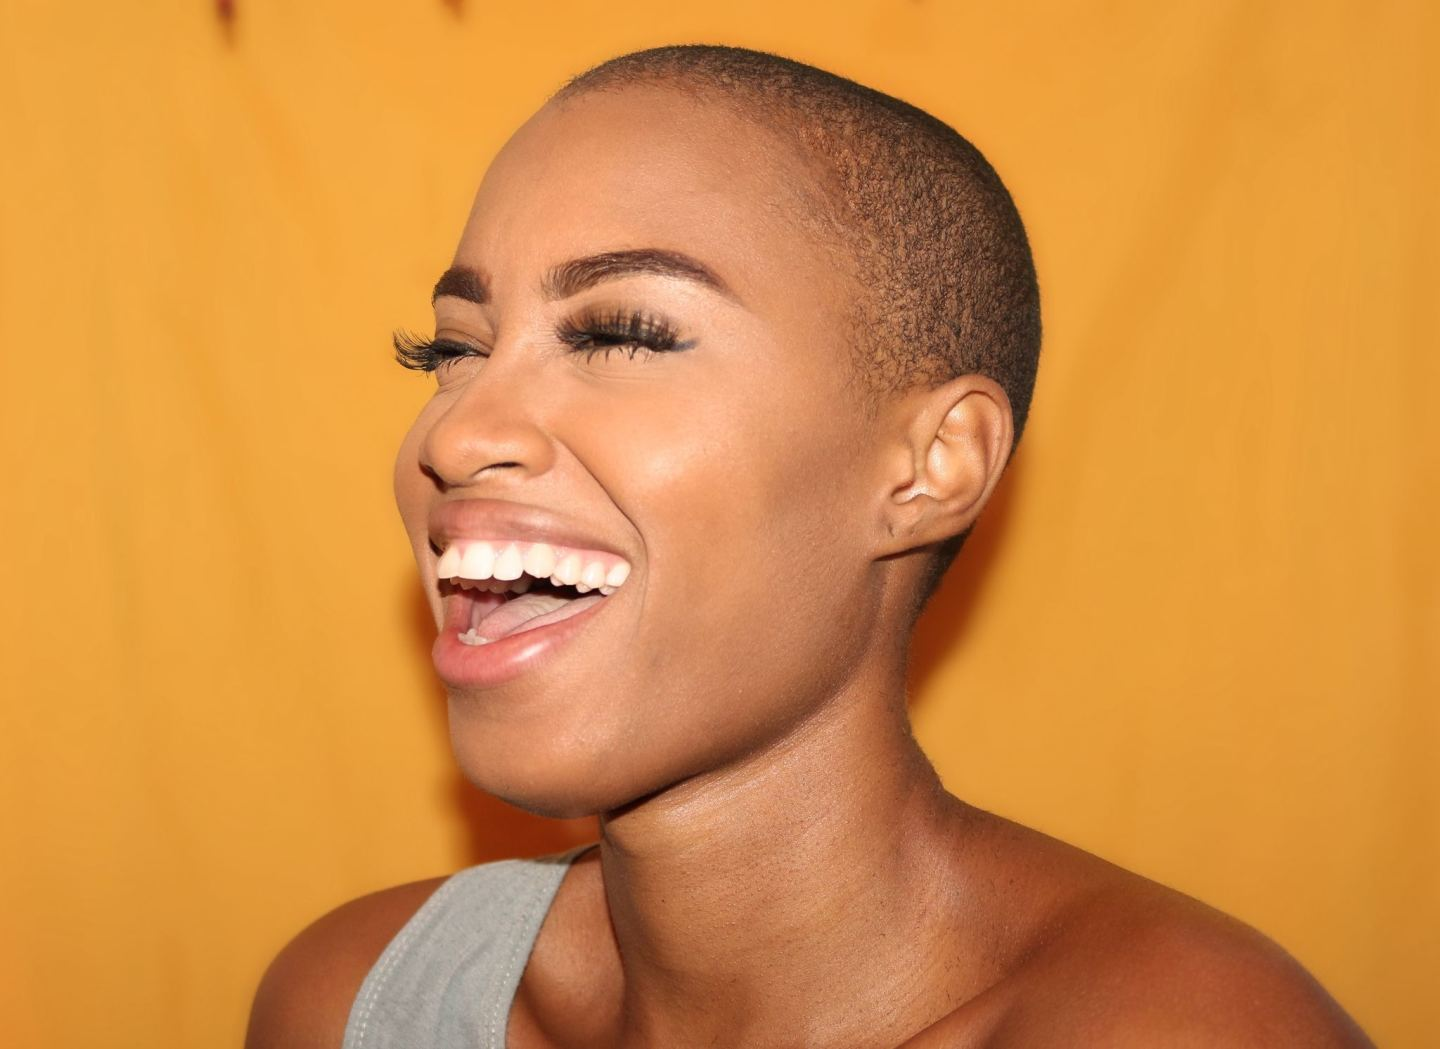 woman shaved head long eyelashes yellow background smile